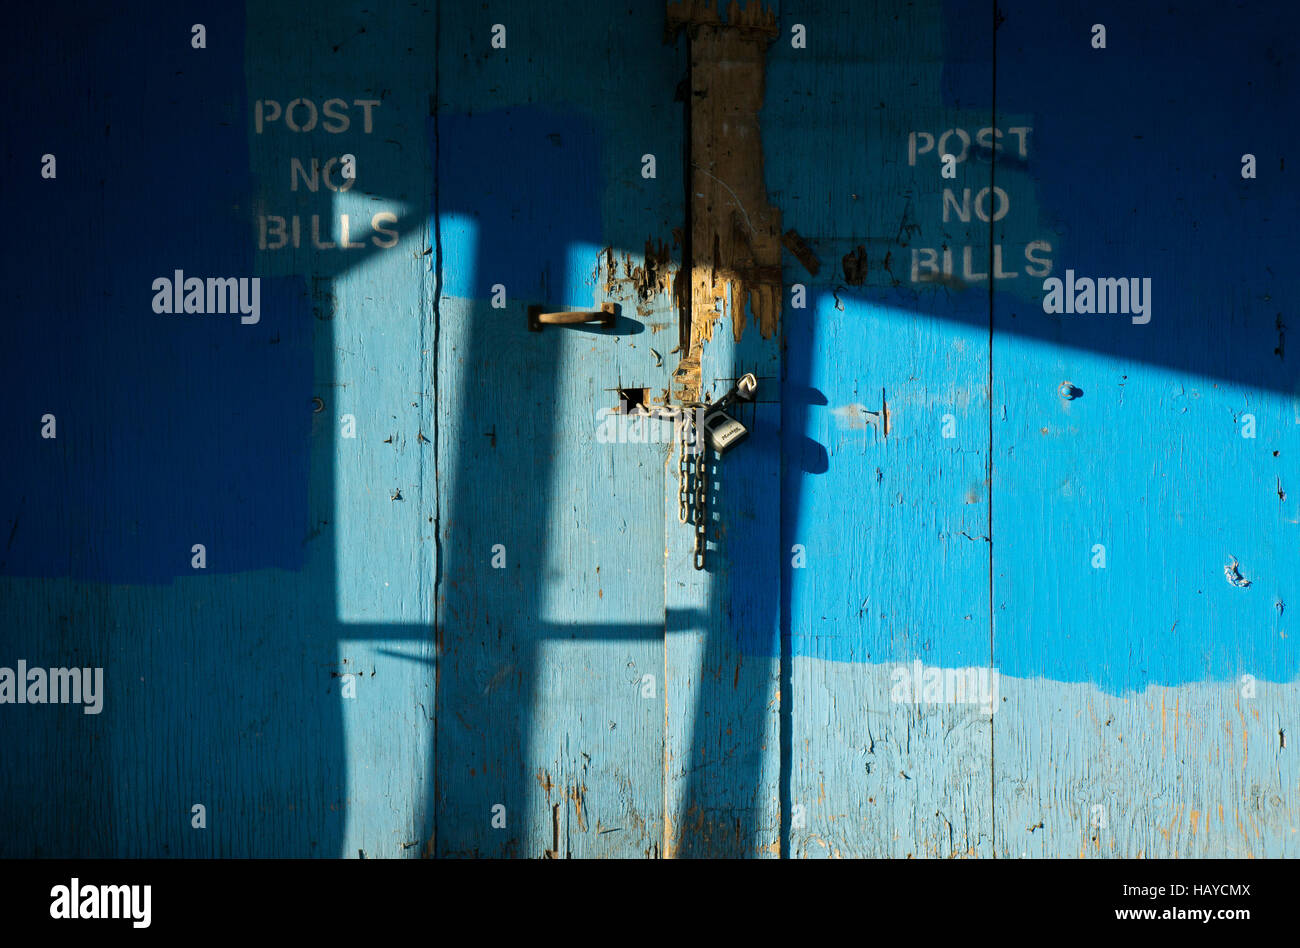 Light and shadow pattern on a cyan colored door on Northern Blvd. in Chinatown, downtown Flushing, Queens, New York. - Stock Image